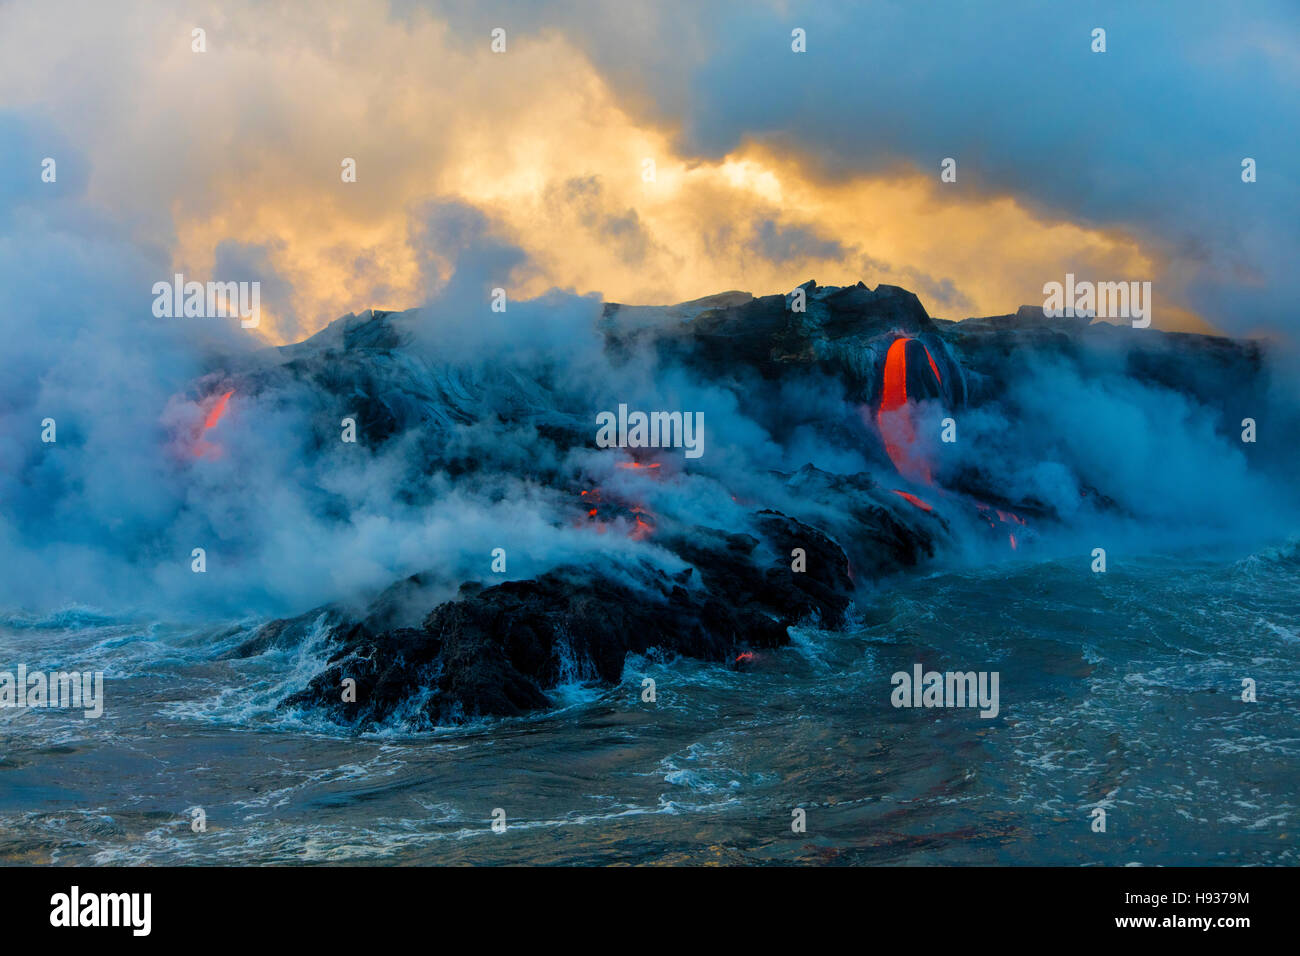 Excursion en bateau de lave, Kilauea Volcano, HVNP. Île de Hawaii, Hawaii Photo Stock